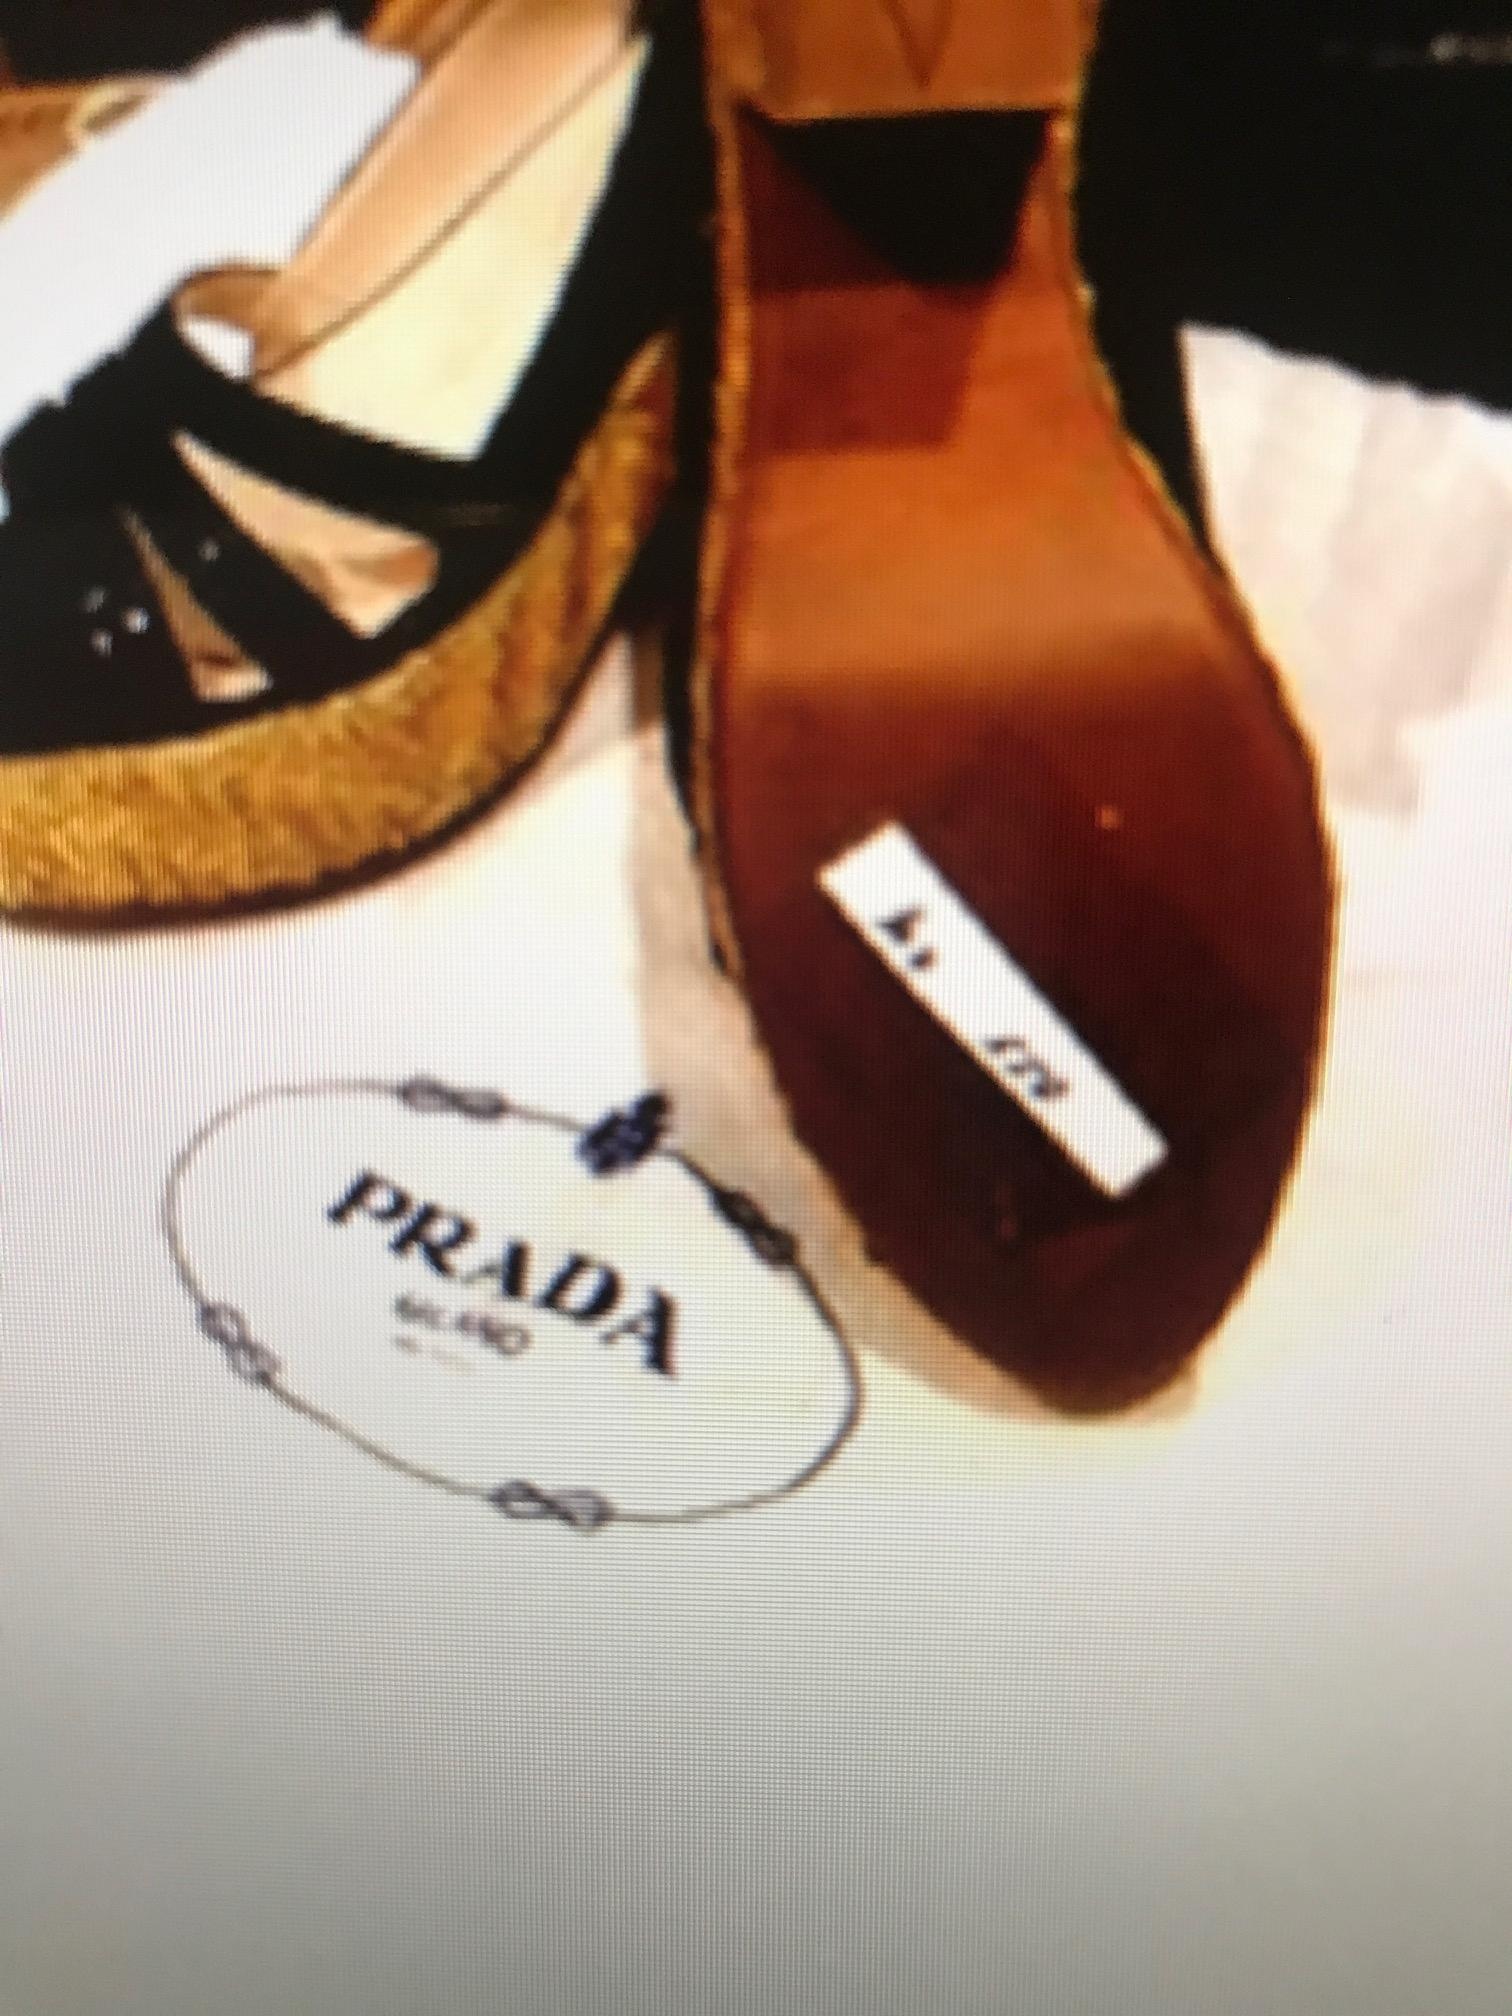 987ace79798a ... Prada Black Patent Patent Patent Leather with Straw Wedge Heels Verde  Flats Size EU 38.5 ...